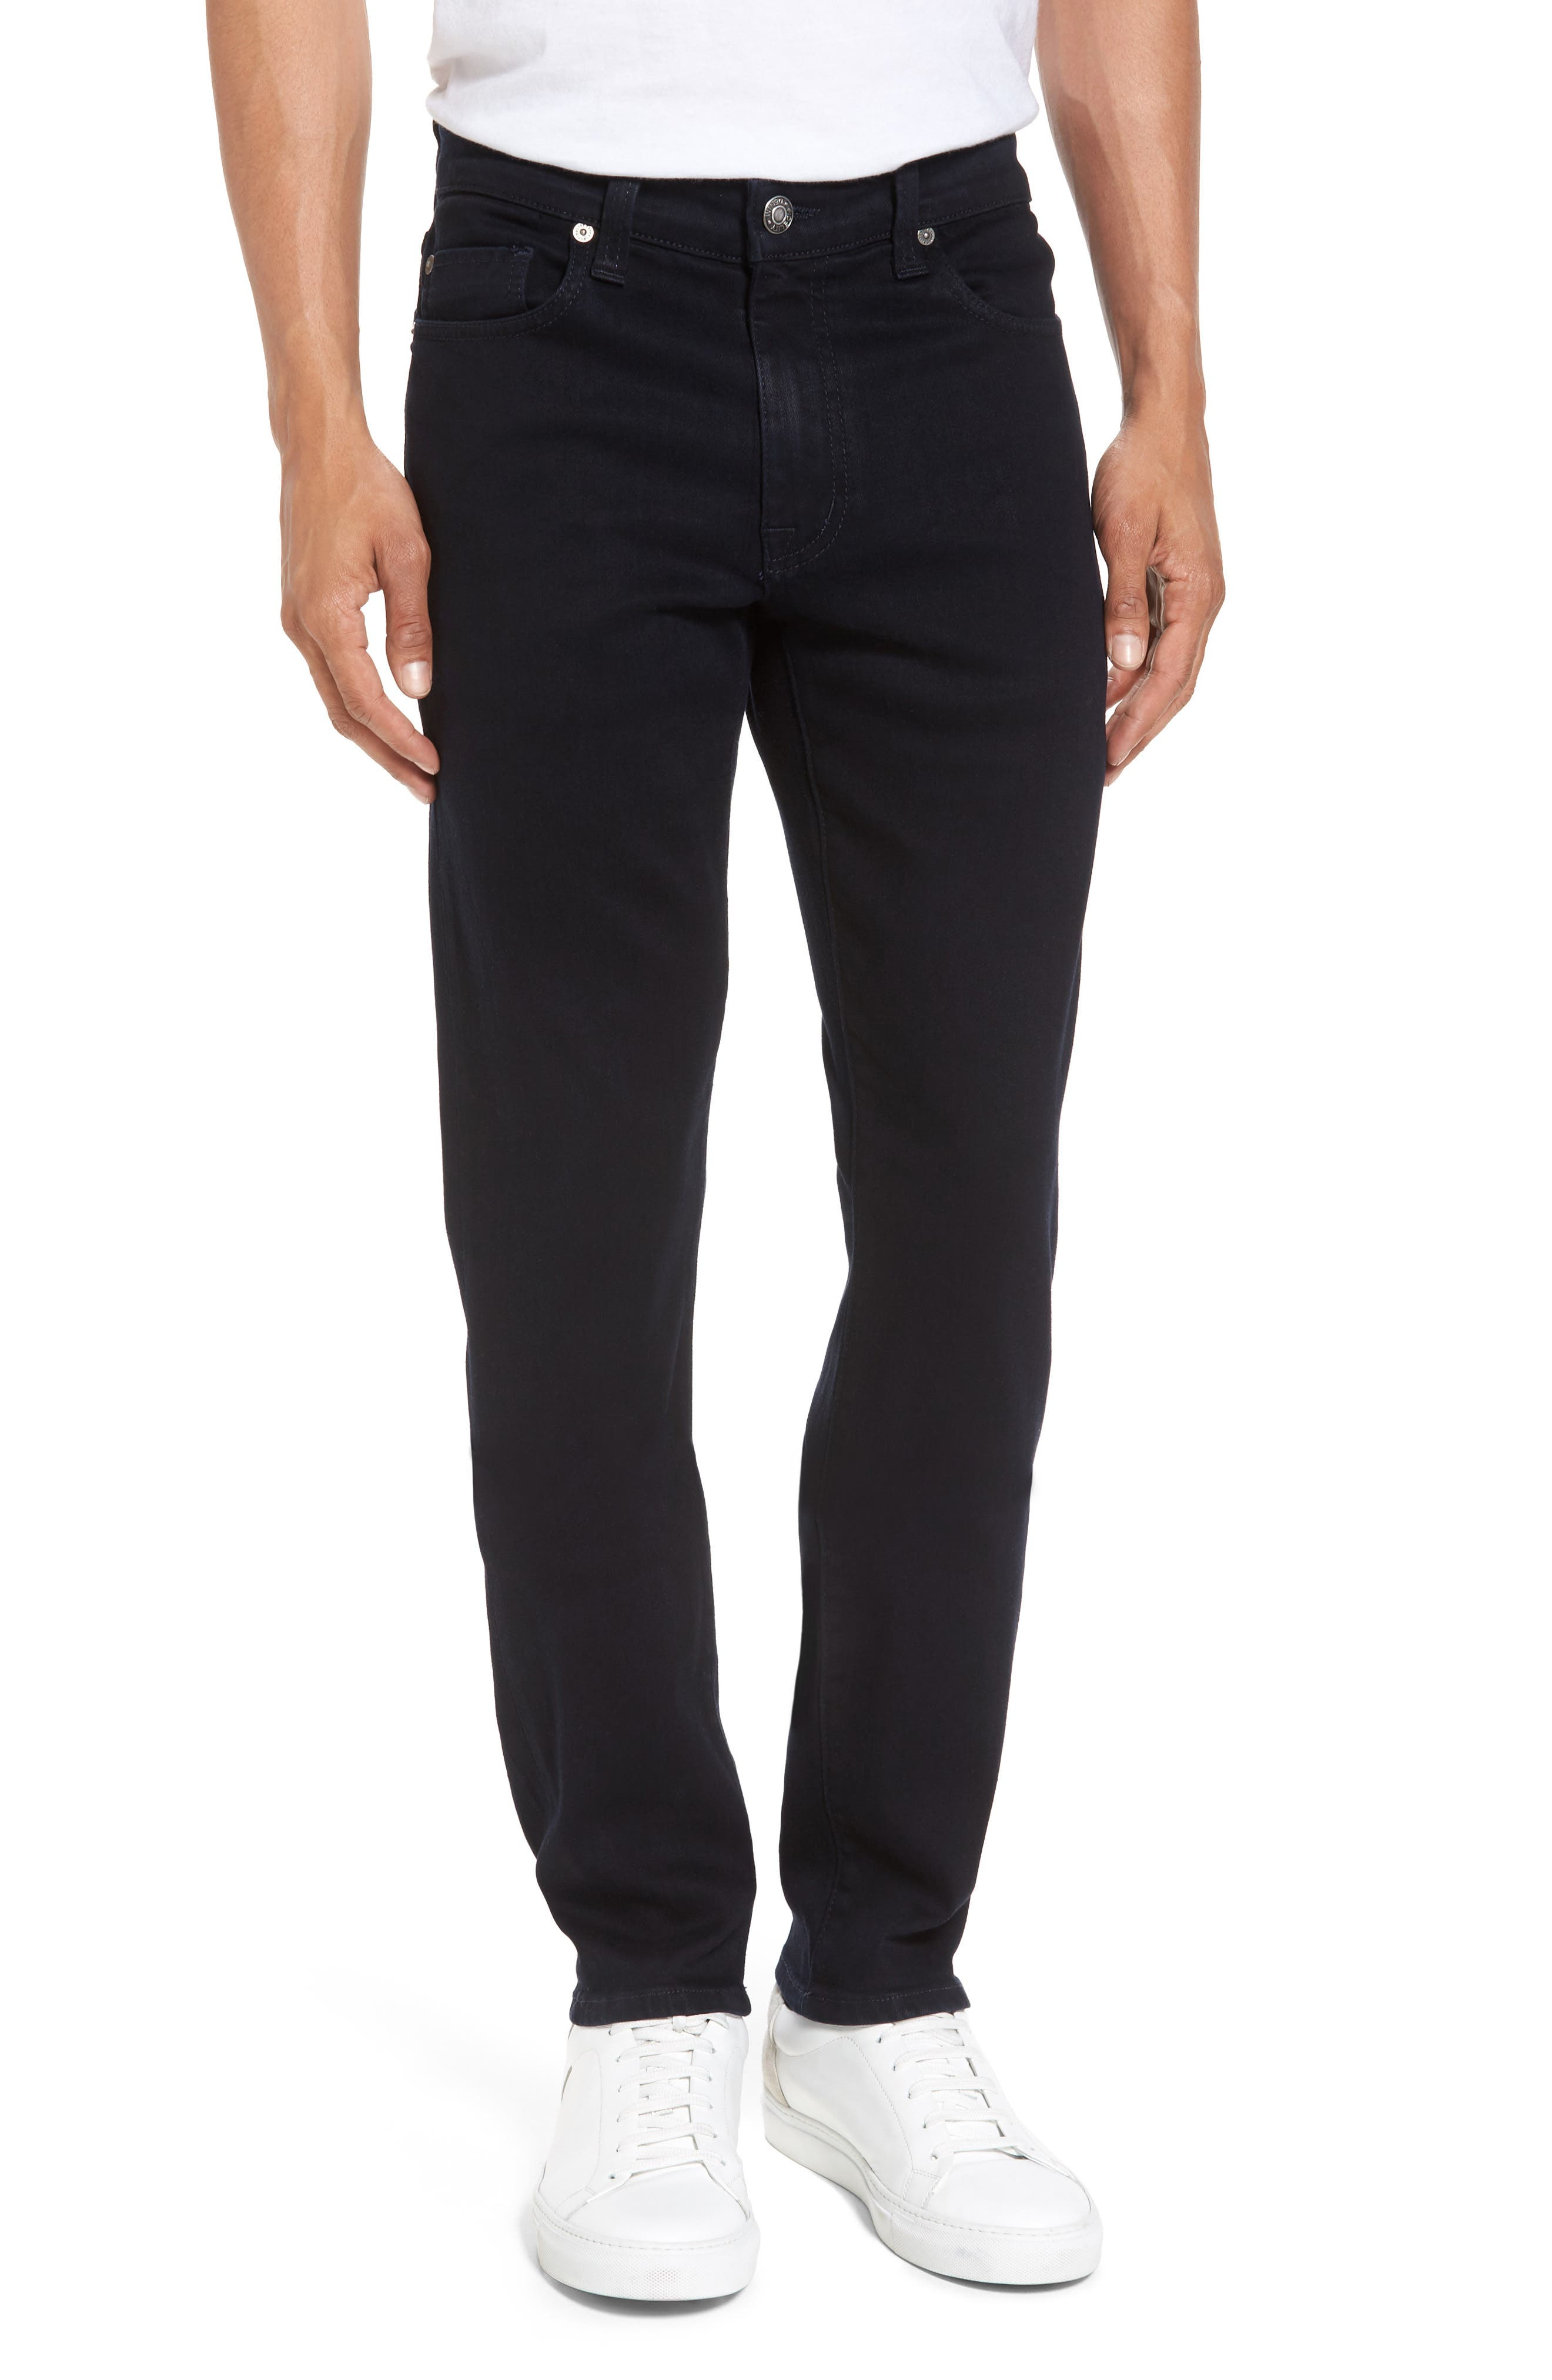 Torino Slim Fit Jeans,                             Main thumbnail 1, color,                             EVERBLUE